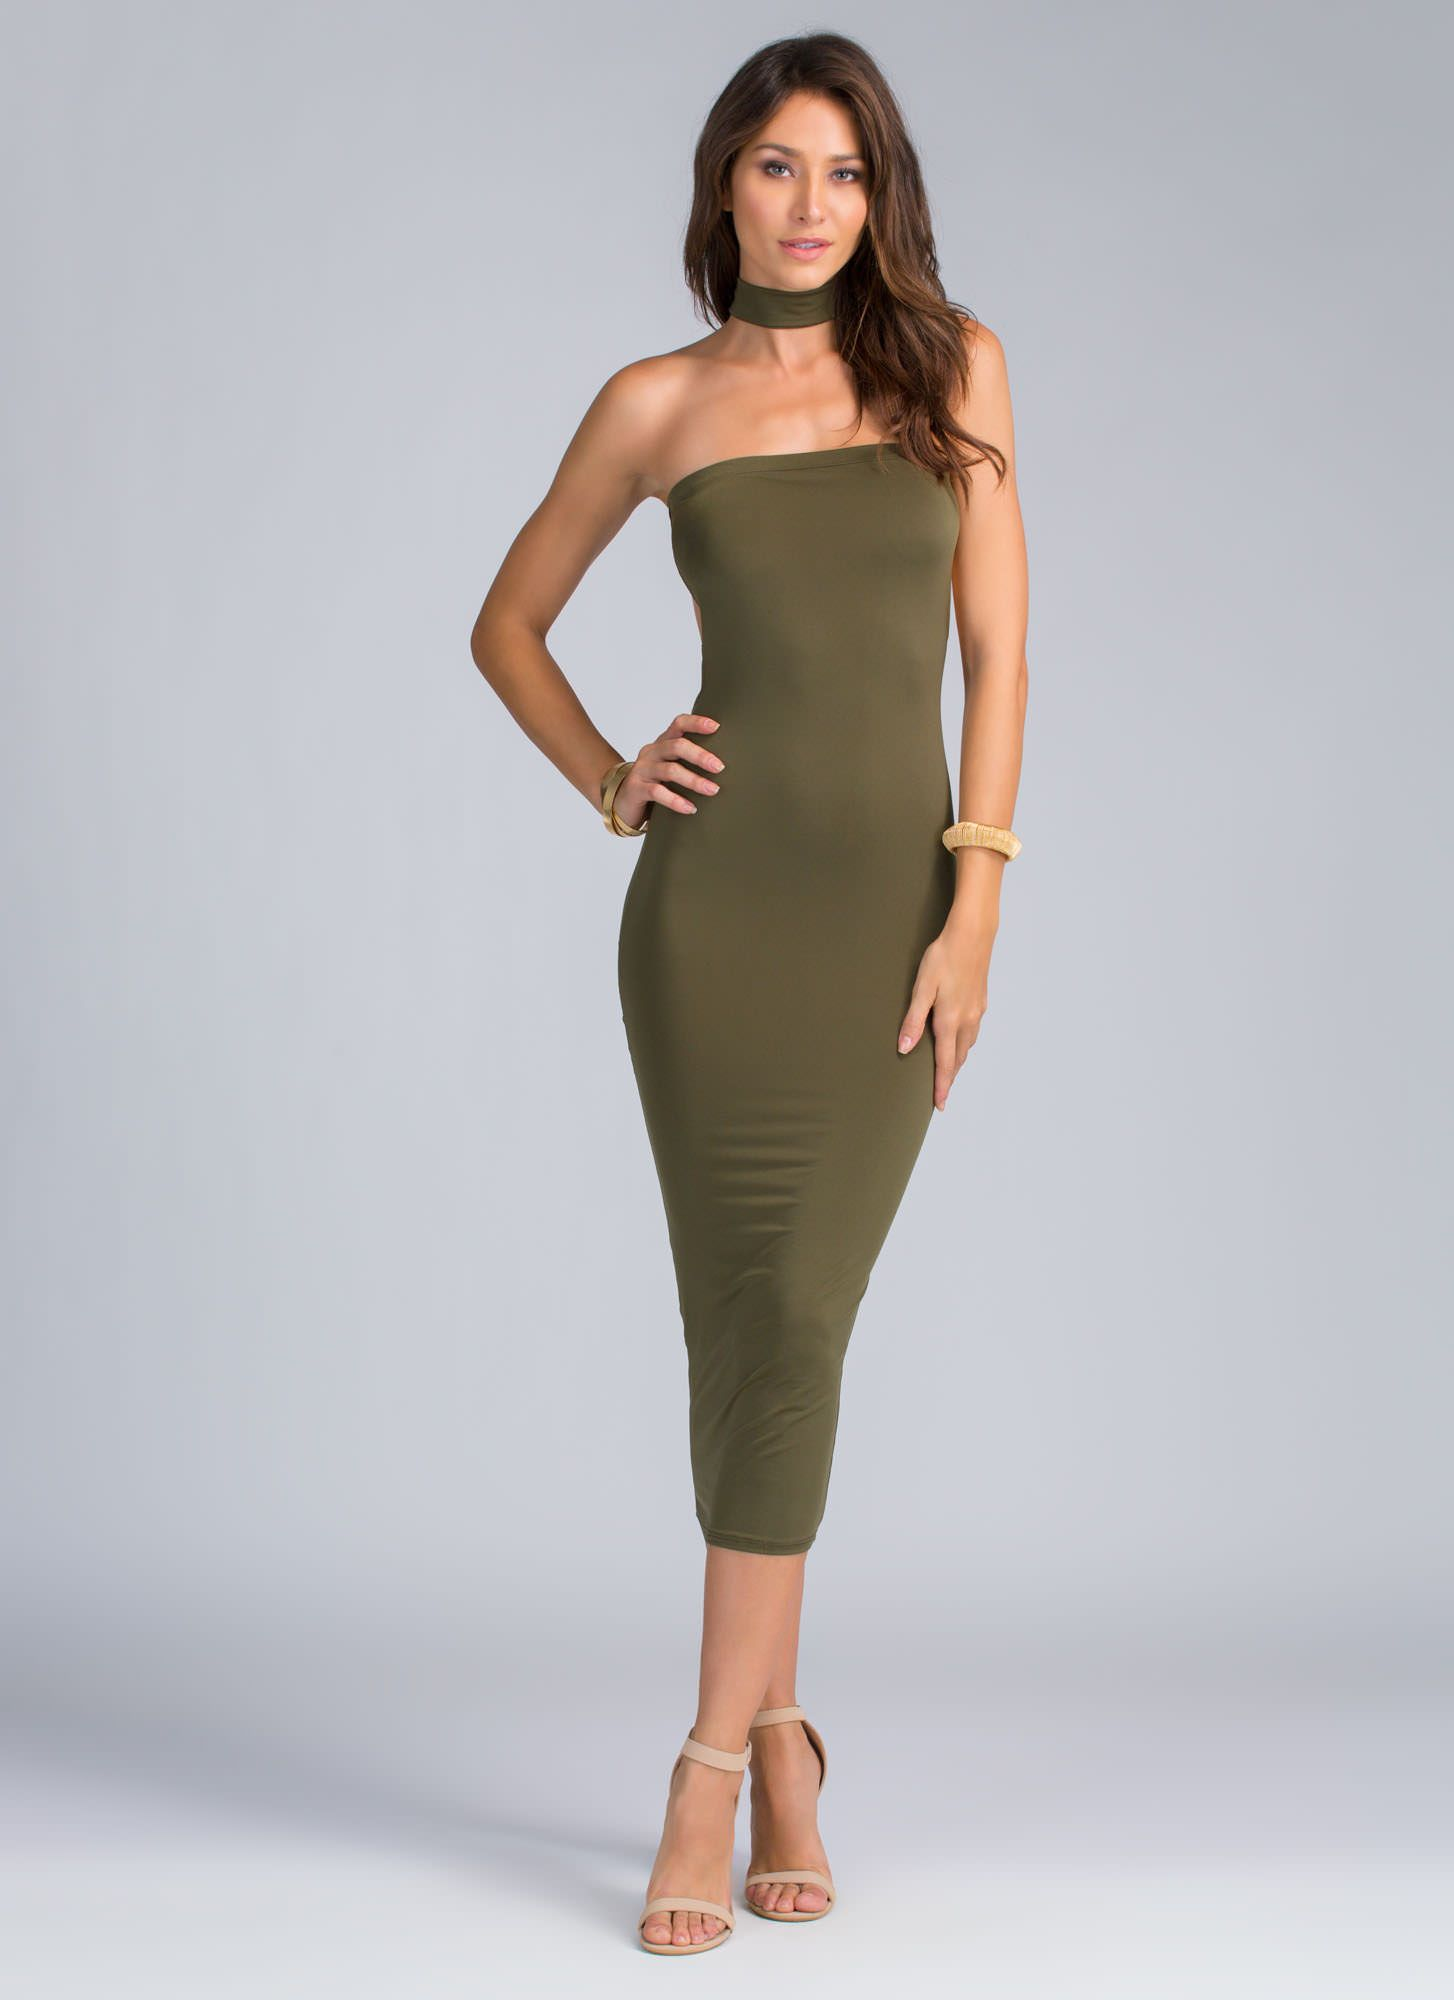 Brand names bodycon dress with heels ebay tall sizes